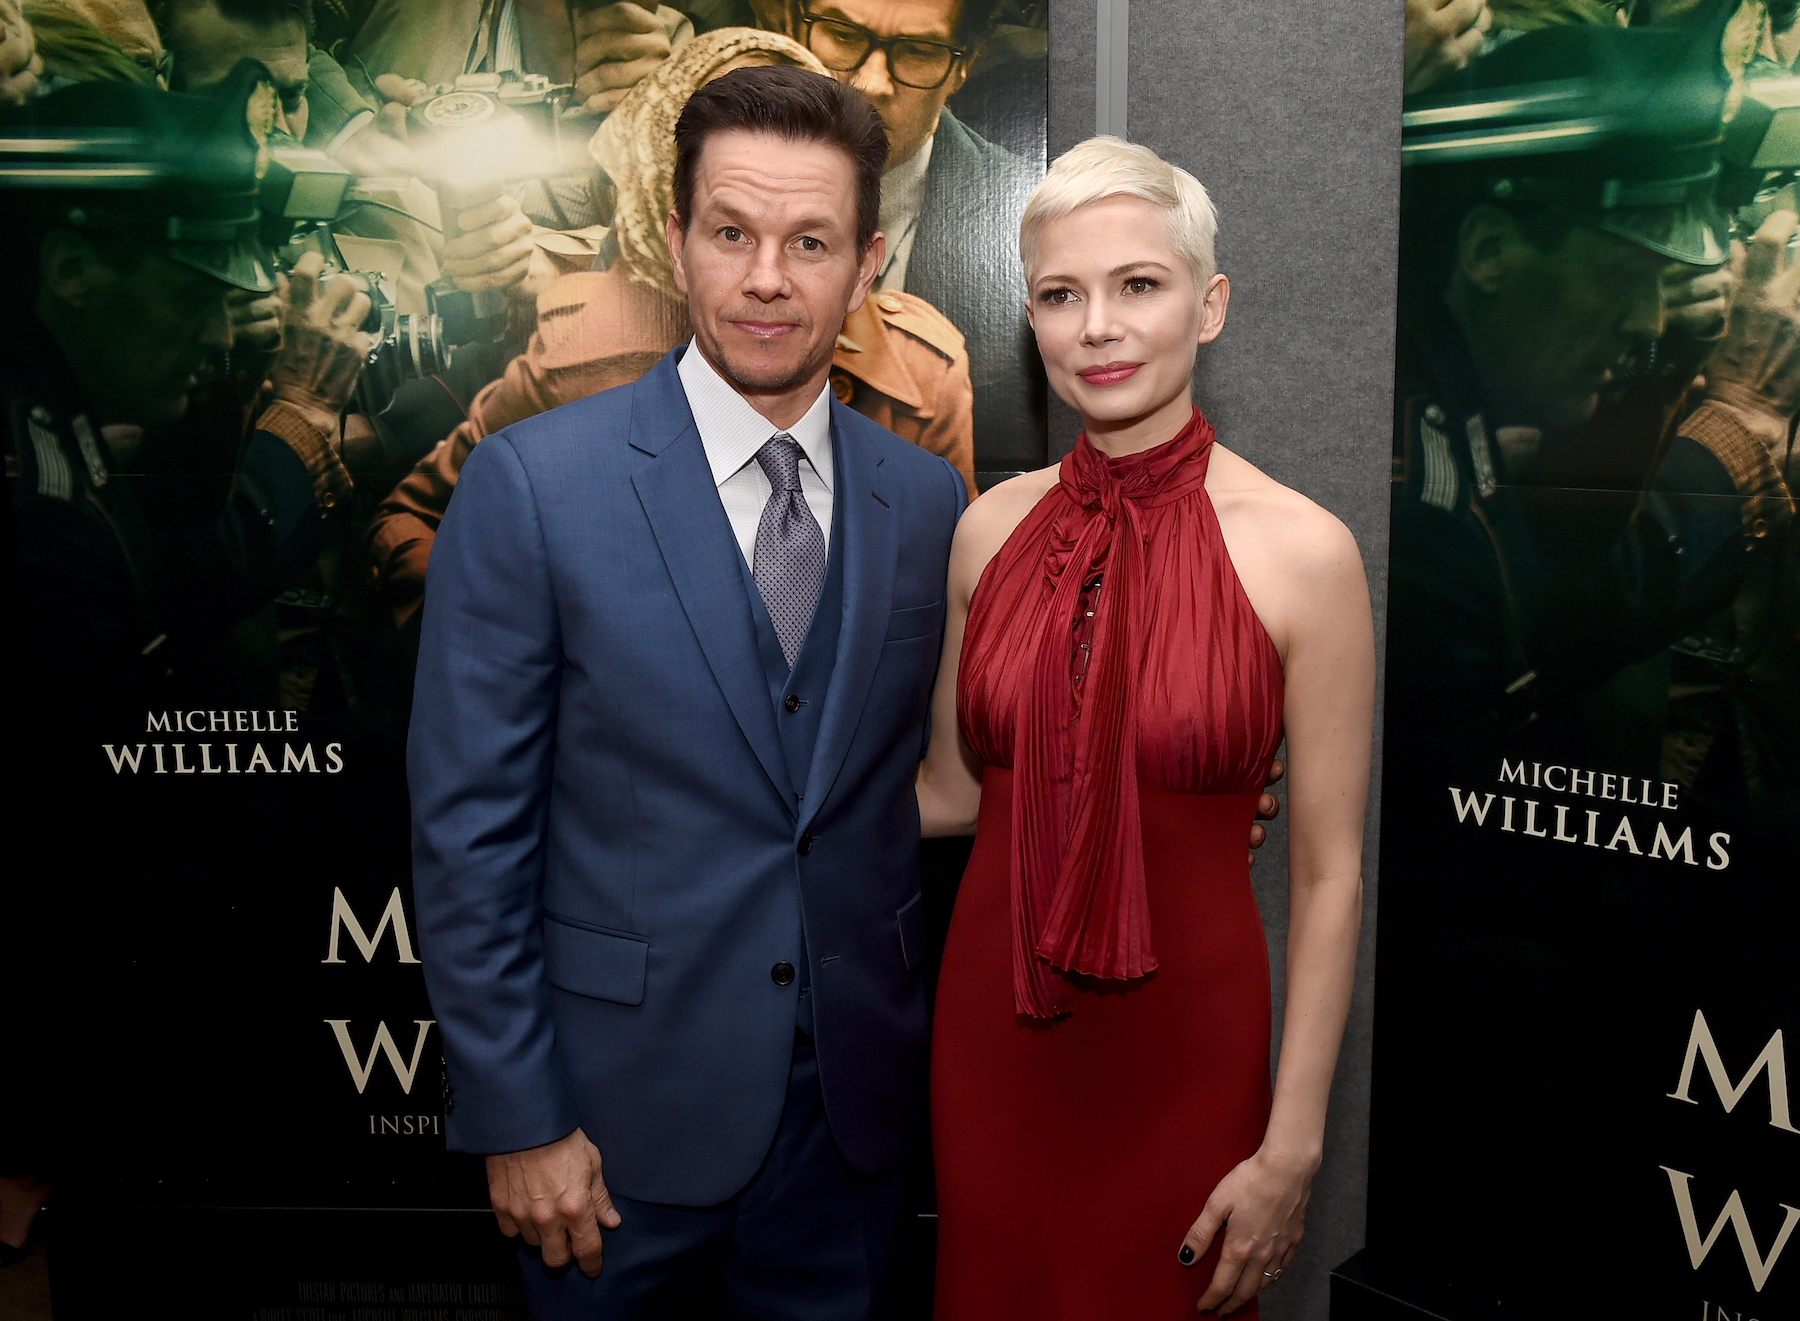 Mark Wahlberg Reportedly Made 100 Times More Than Michelle Williams on All the Money Reshoots